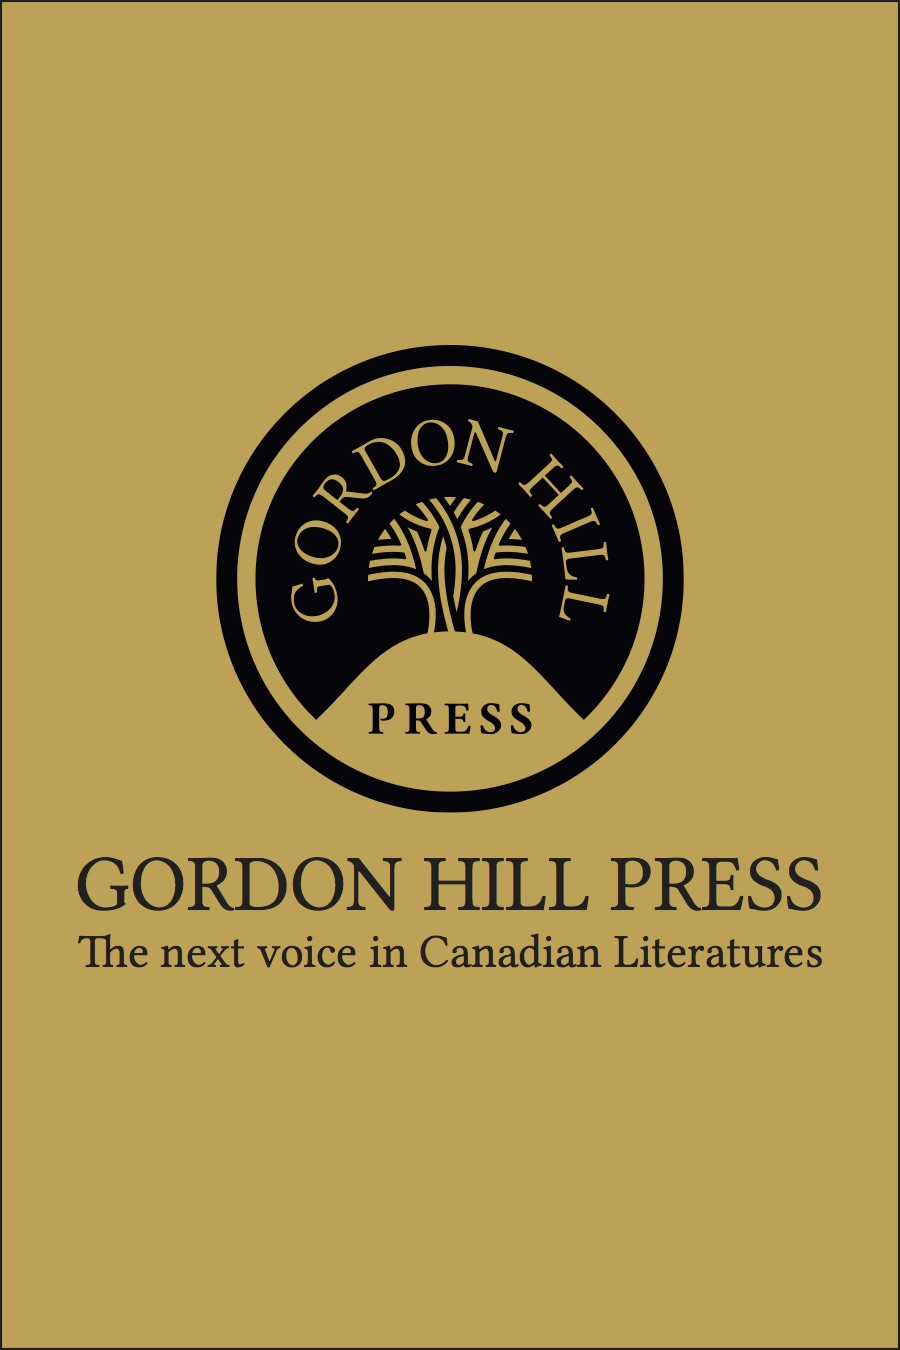 Gordon Hill Press Logo